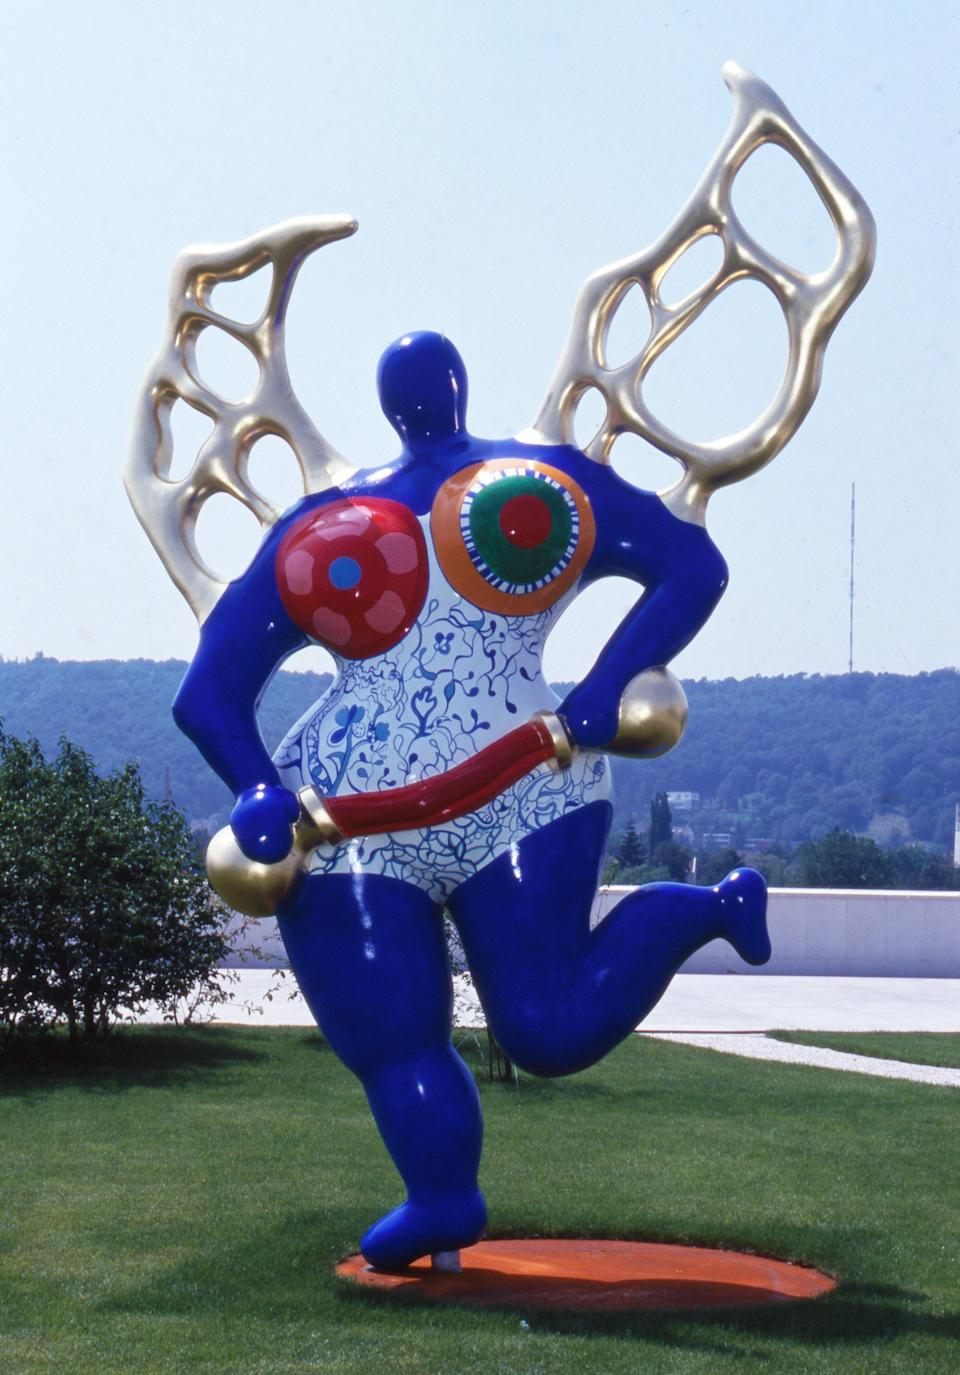 Saint Phalle & # x002019; s cobalt blue Nana on display at an exhibition in Germany, 1992